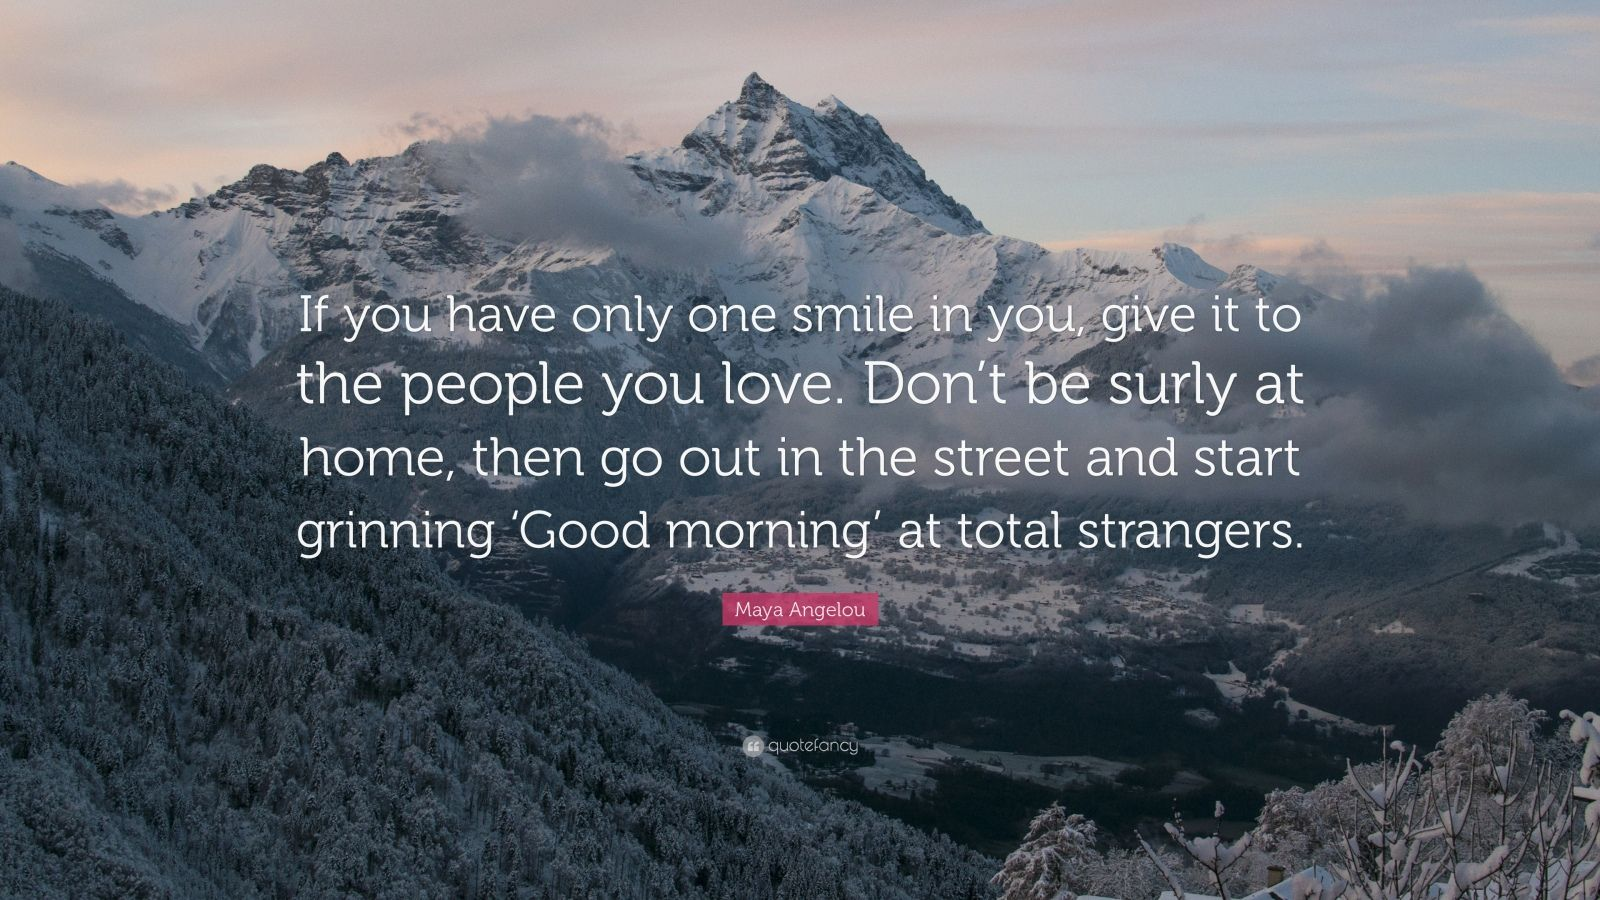 "Maya Angelou Quote: ""If you have only one smile in you, give it to the people you love. Don't be surly at home, then go out in the street and start grinning 'Good morning' at total strangers."""